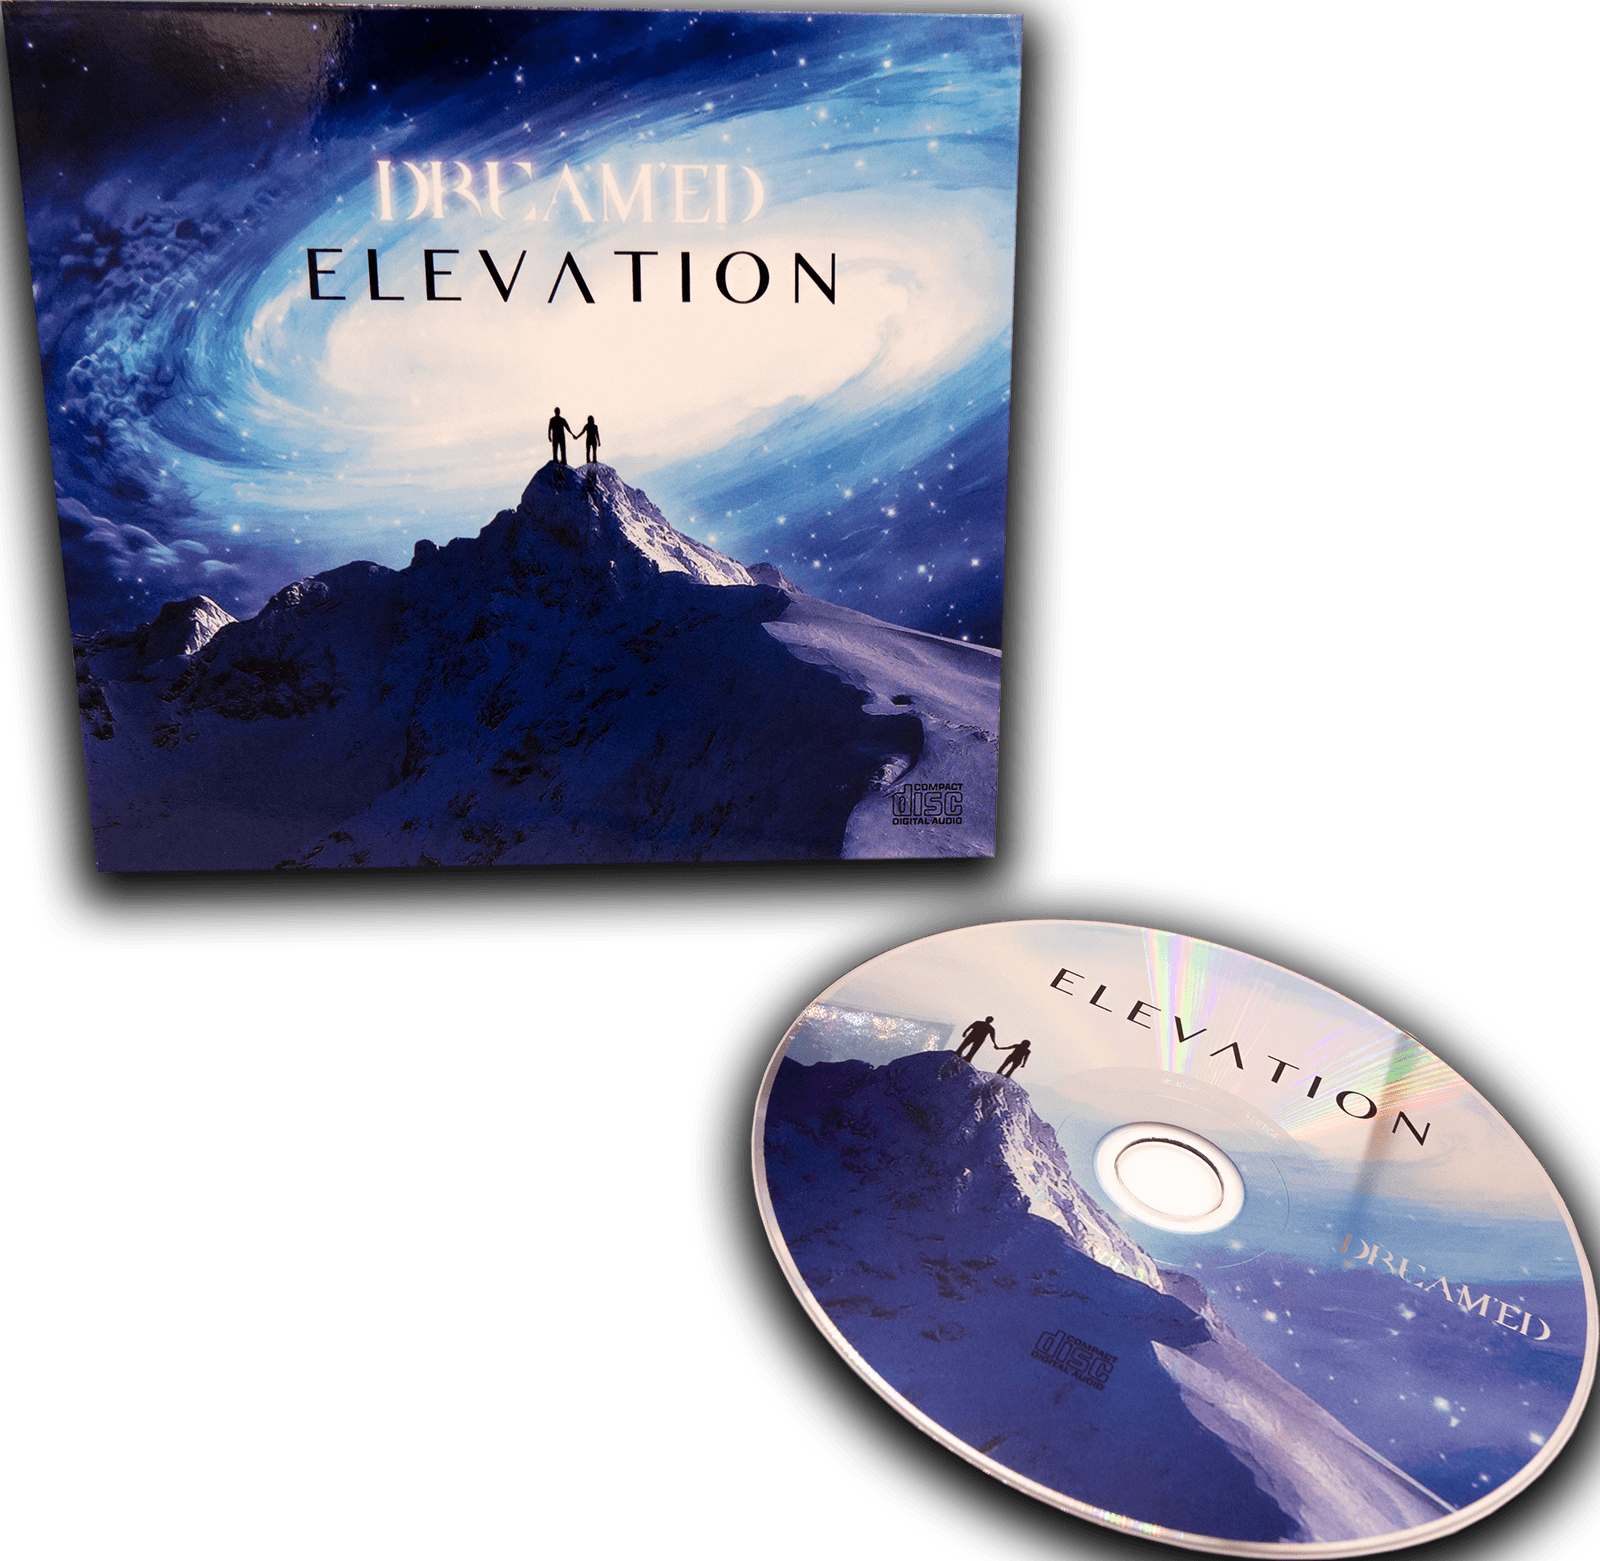 Elevation Album Dream'Ed